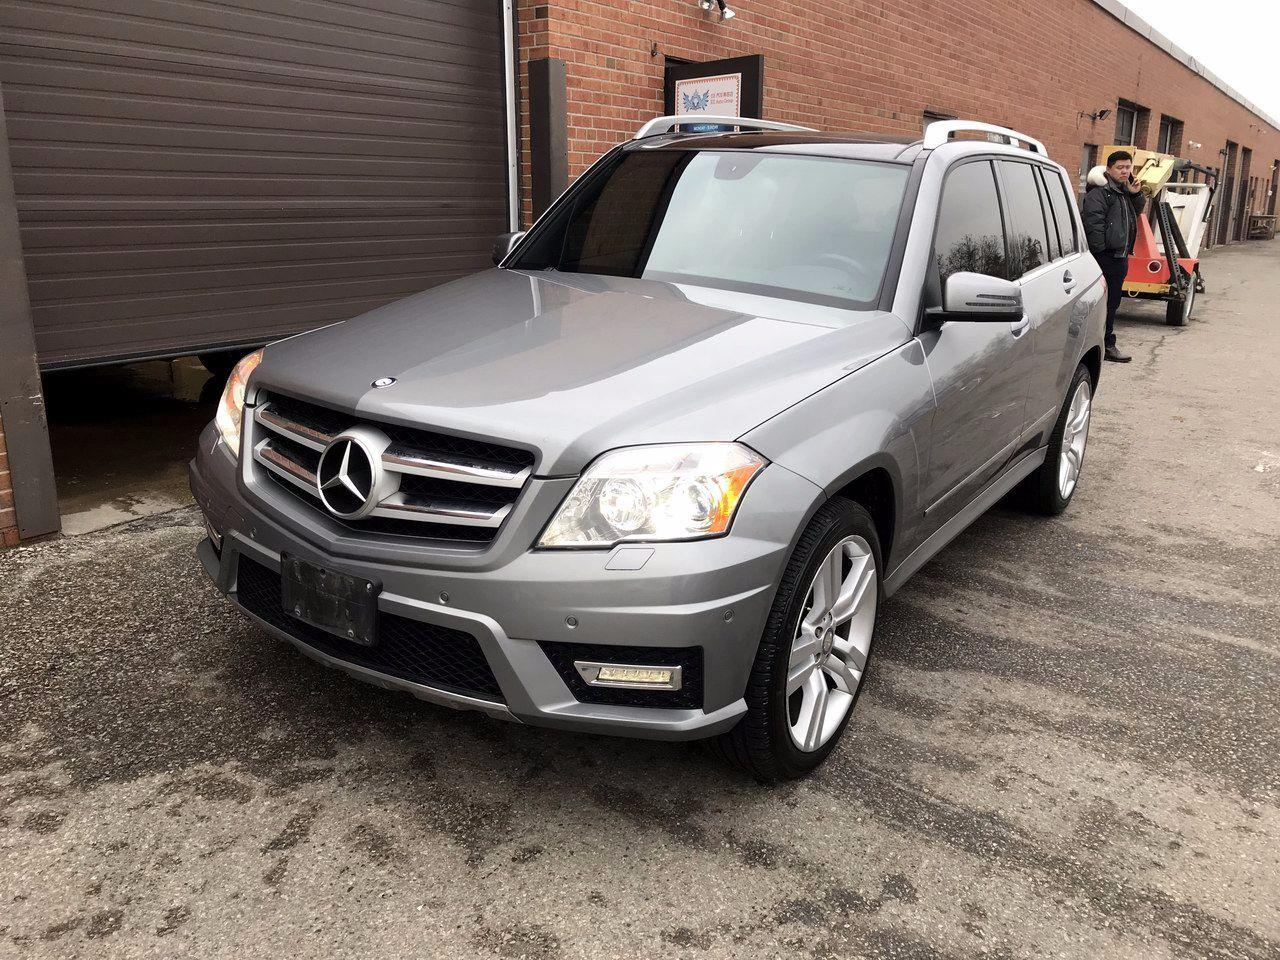 Used 2012 mercedes benz glk350 nav camera pano roof for for Mercedes benz scarborough